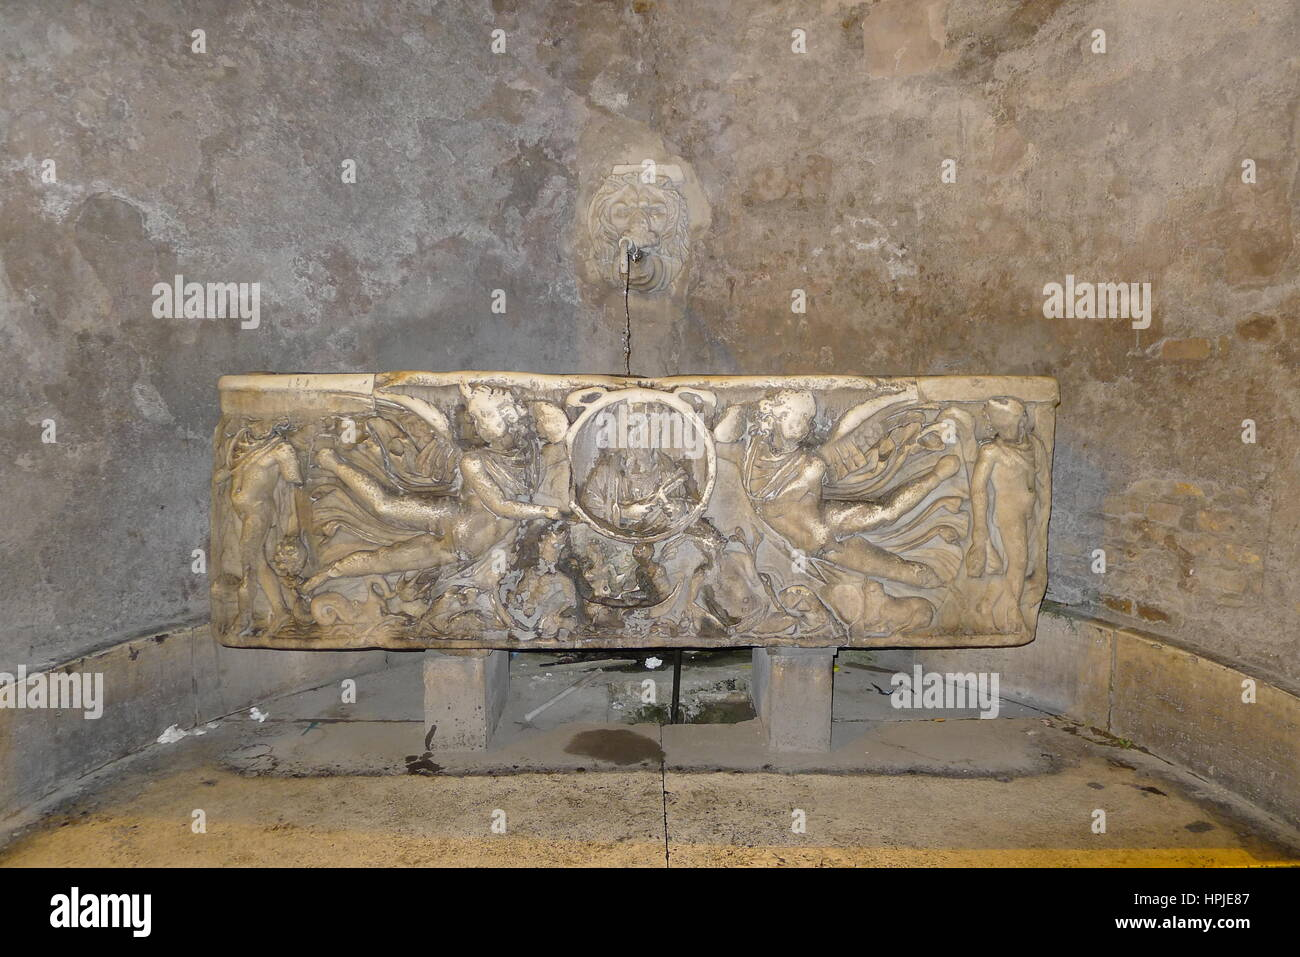 Water Trough In Rome Italy Stock Photo Alamy